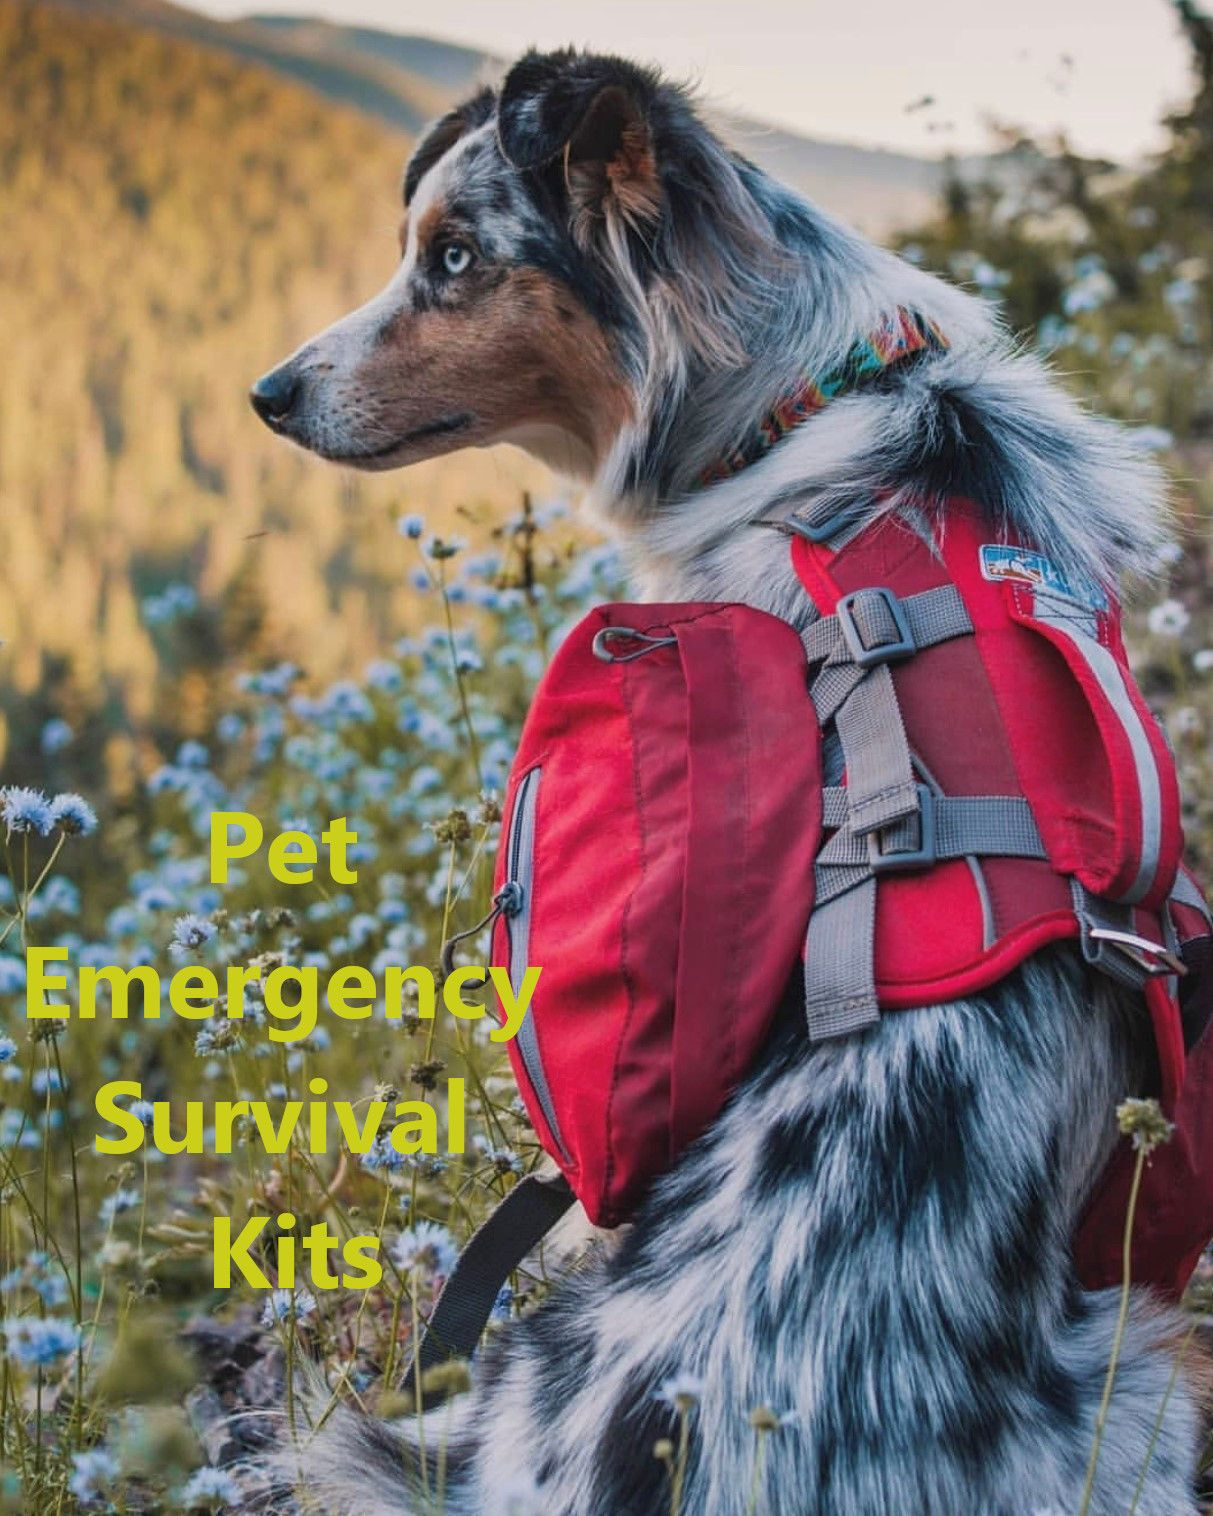 Pin by Ebooksy on Survival tips in 2020 (With images